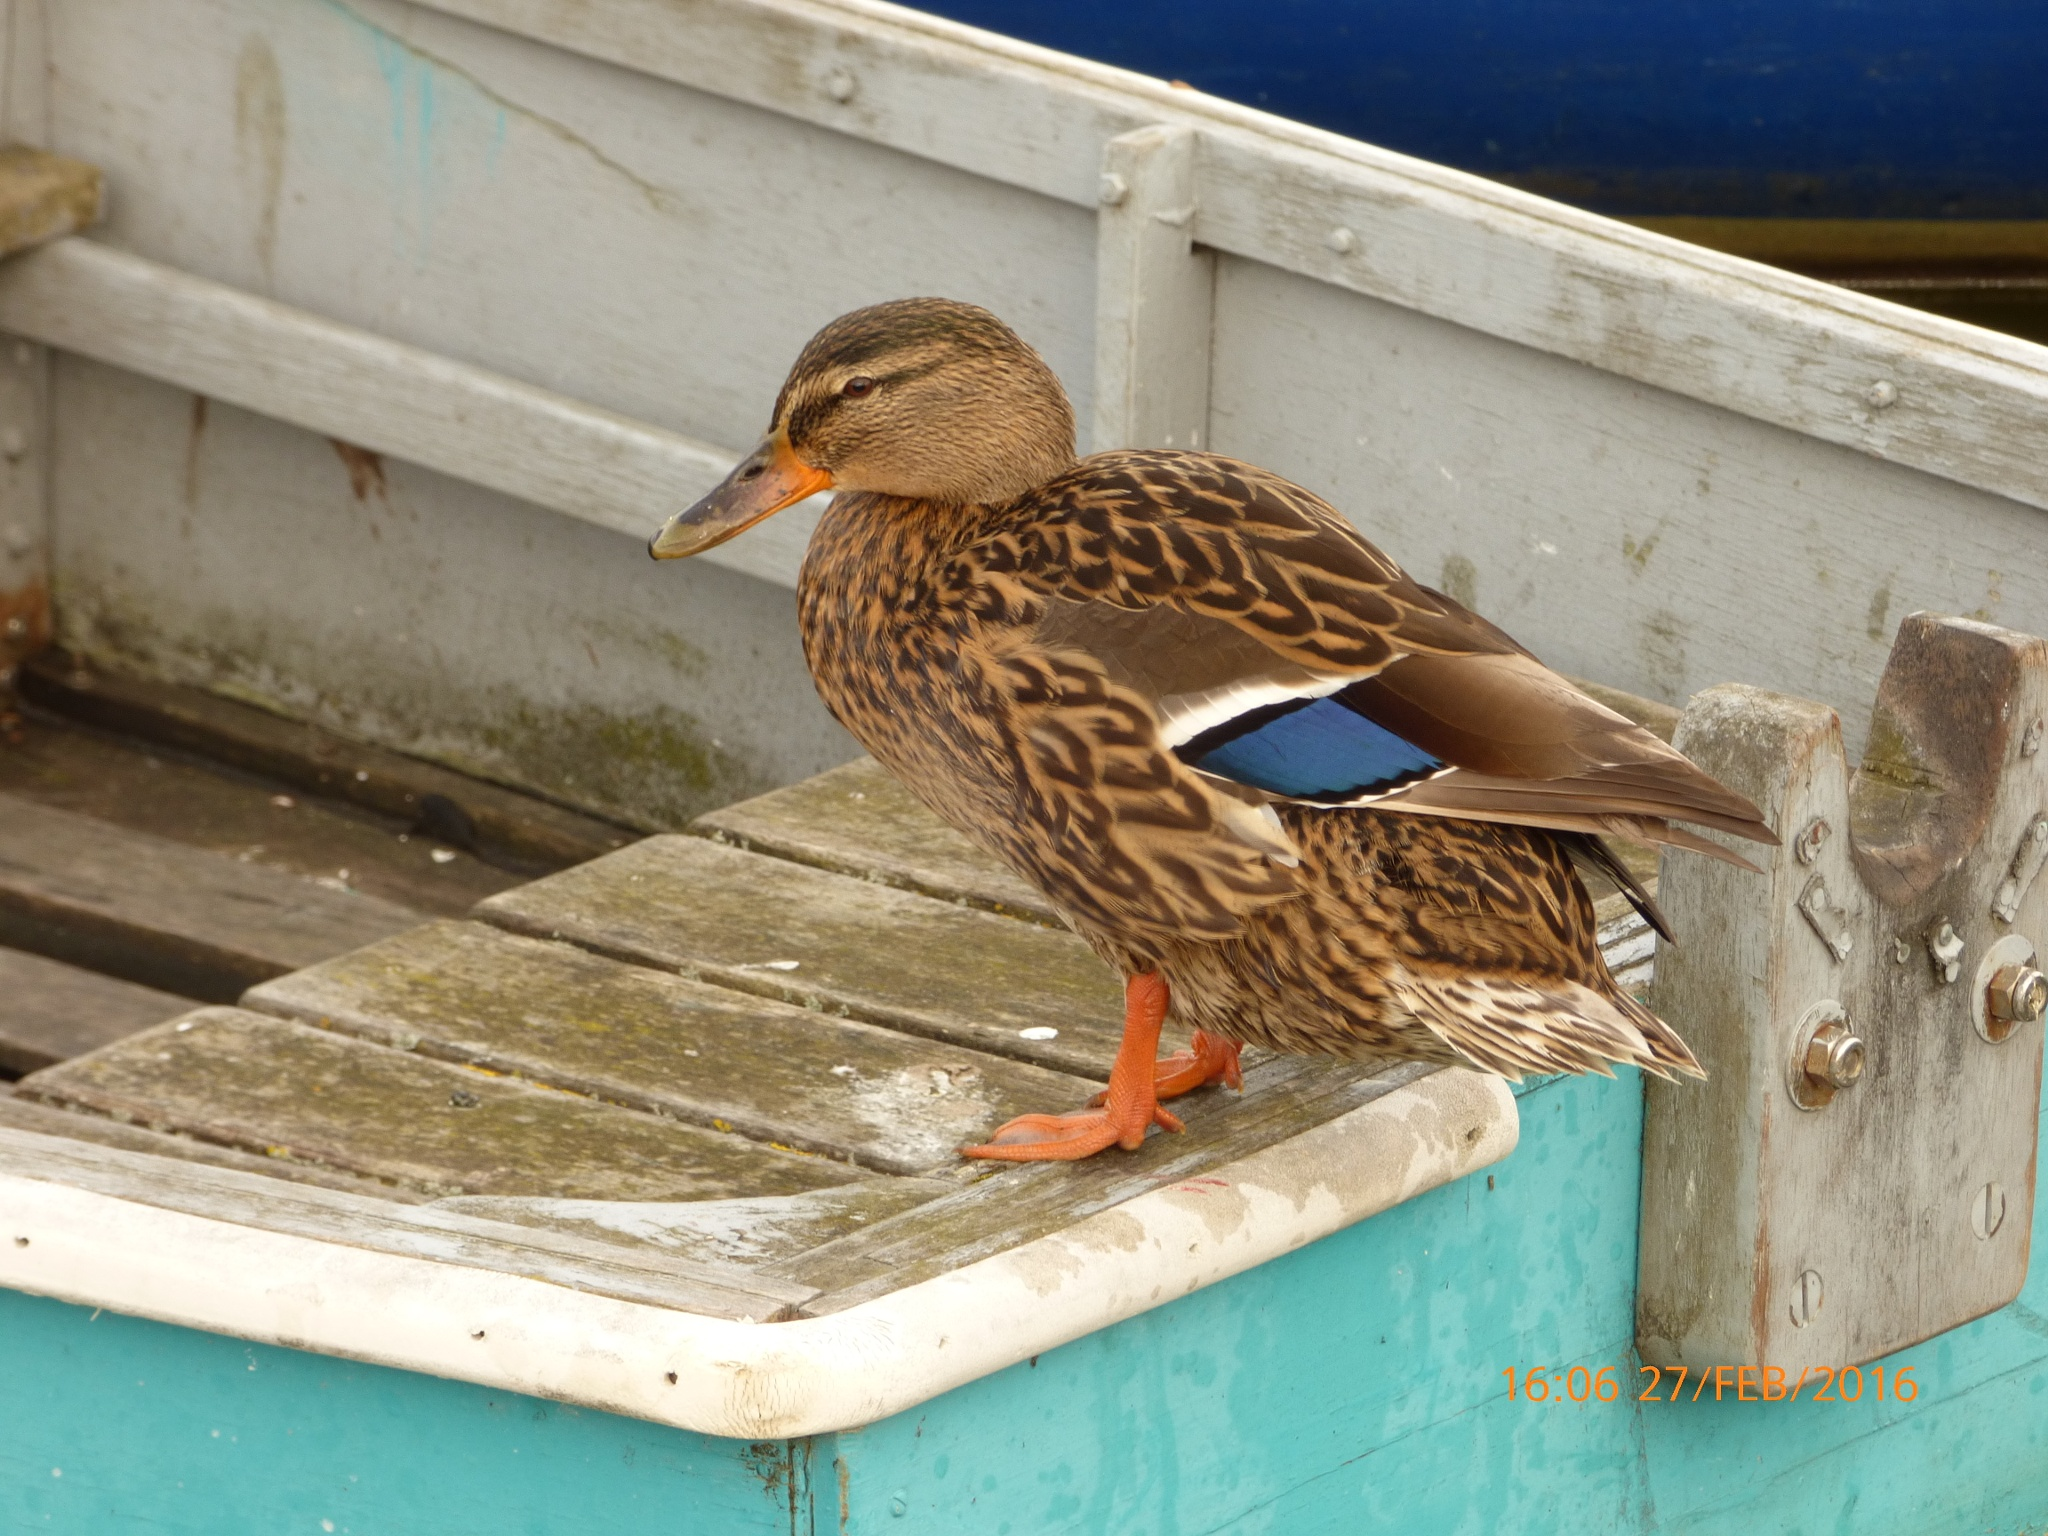 a lovely duck sitting on a boat  by chinaclowns2